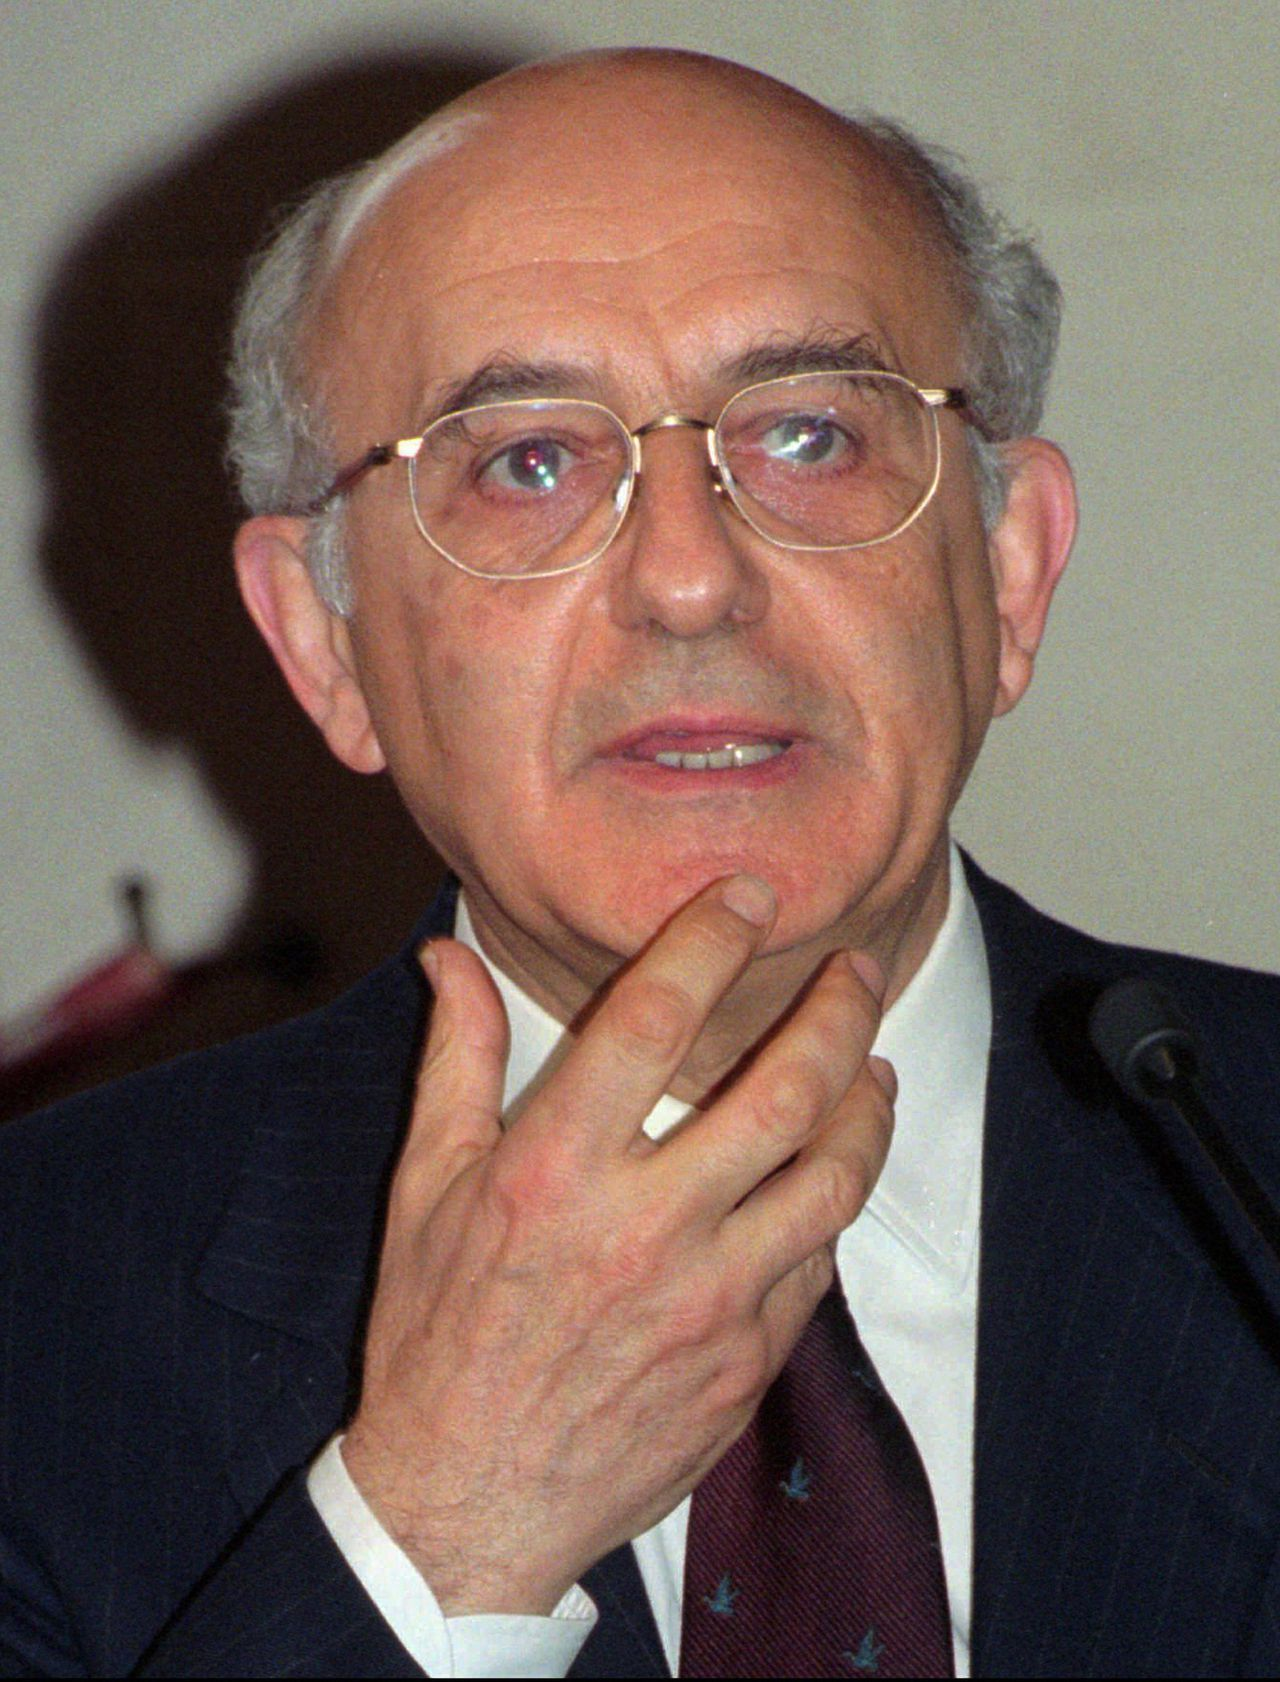 FILE - In this Wednesday, Feb. 21, 1996 file photo, judge Antonio Cassese gestures, in Paris, France. The Special Tribunal for Lebanon says its former president, renowned Italian jurist Antonio Cassese, has died after a long battle with cancer. The court said in a statement Saturday, Oct. 22, 2011, that Cassese died peacefully at his home in Florence on Friday night. His death came less than two weeks after Cassese stepped down as the tribunal's president due to his ill health. Cassese was one of the world's most respected experts in international law. He also served as the first president of the International Criminal Tribunal for the Former Yugoslavia from 1993-97 and led the United Nations' International Commission of Inquiry into Genocide in Darfur in 2004. (AP Photo/Michel Lipchitz, File)